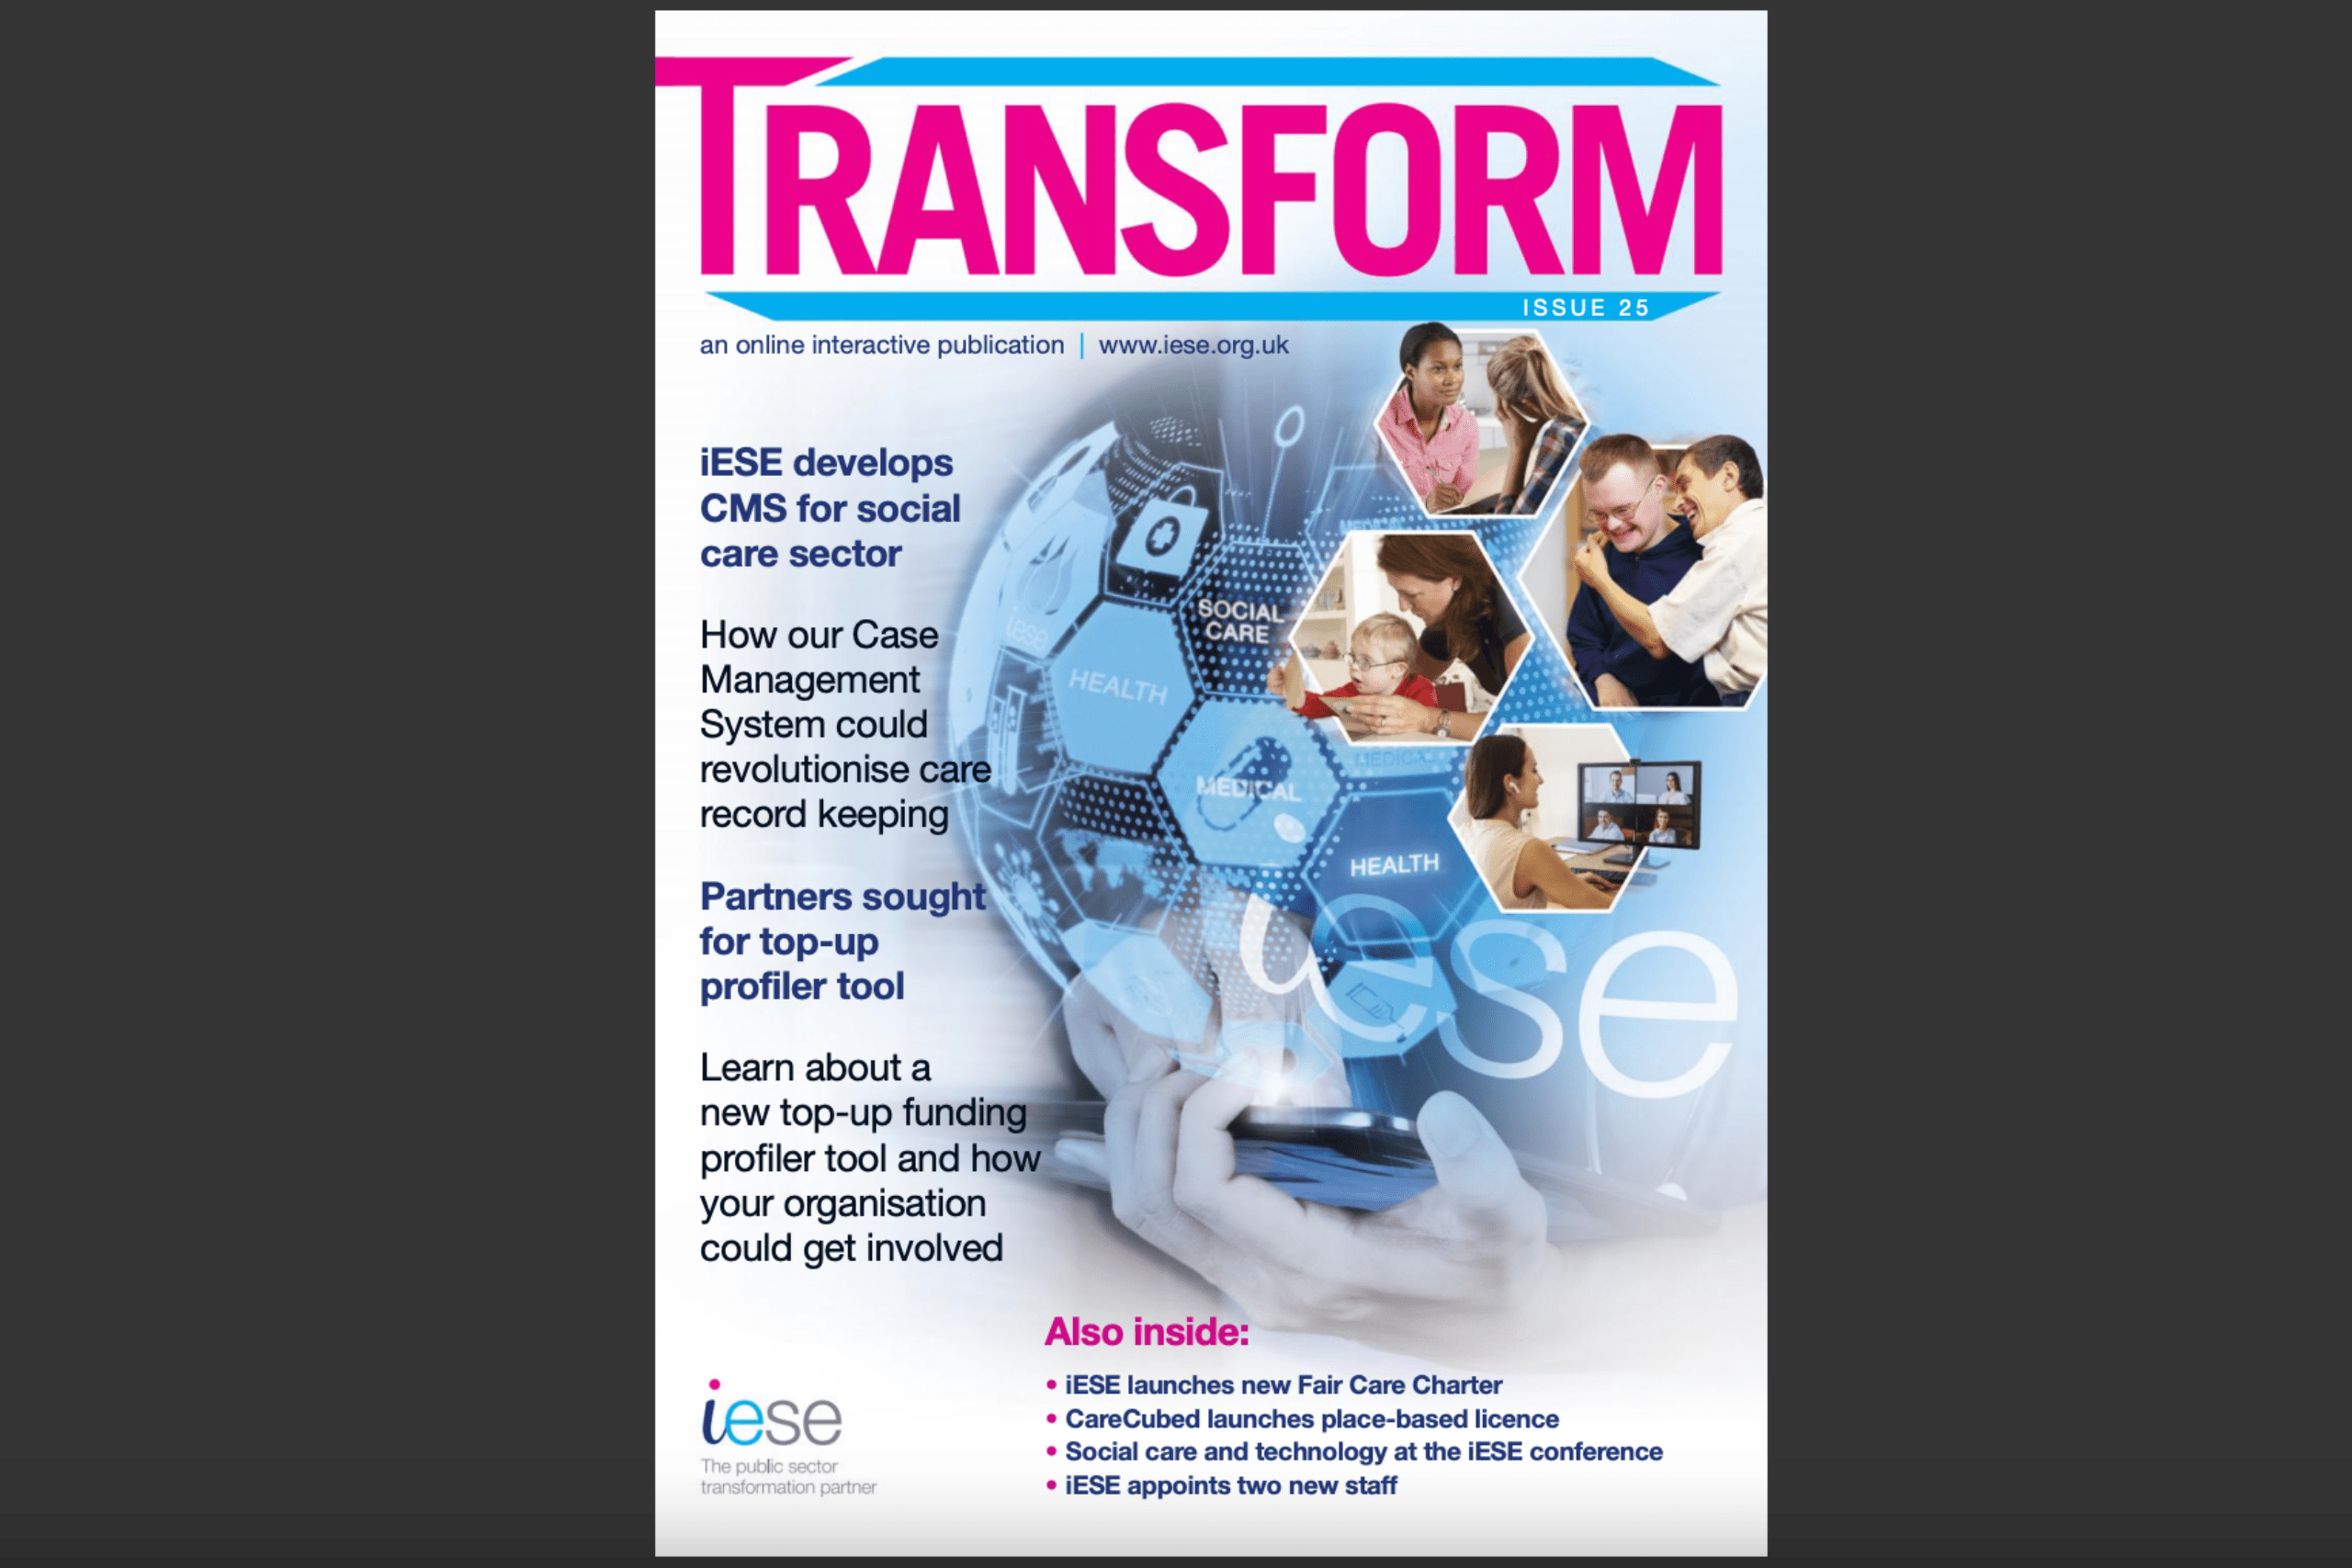 Transform Feb21 front cover feature image